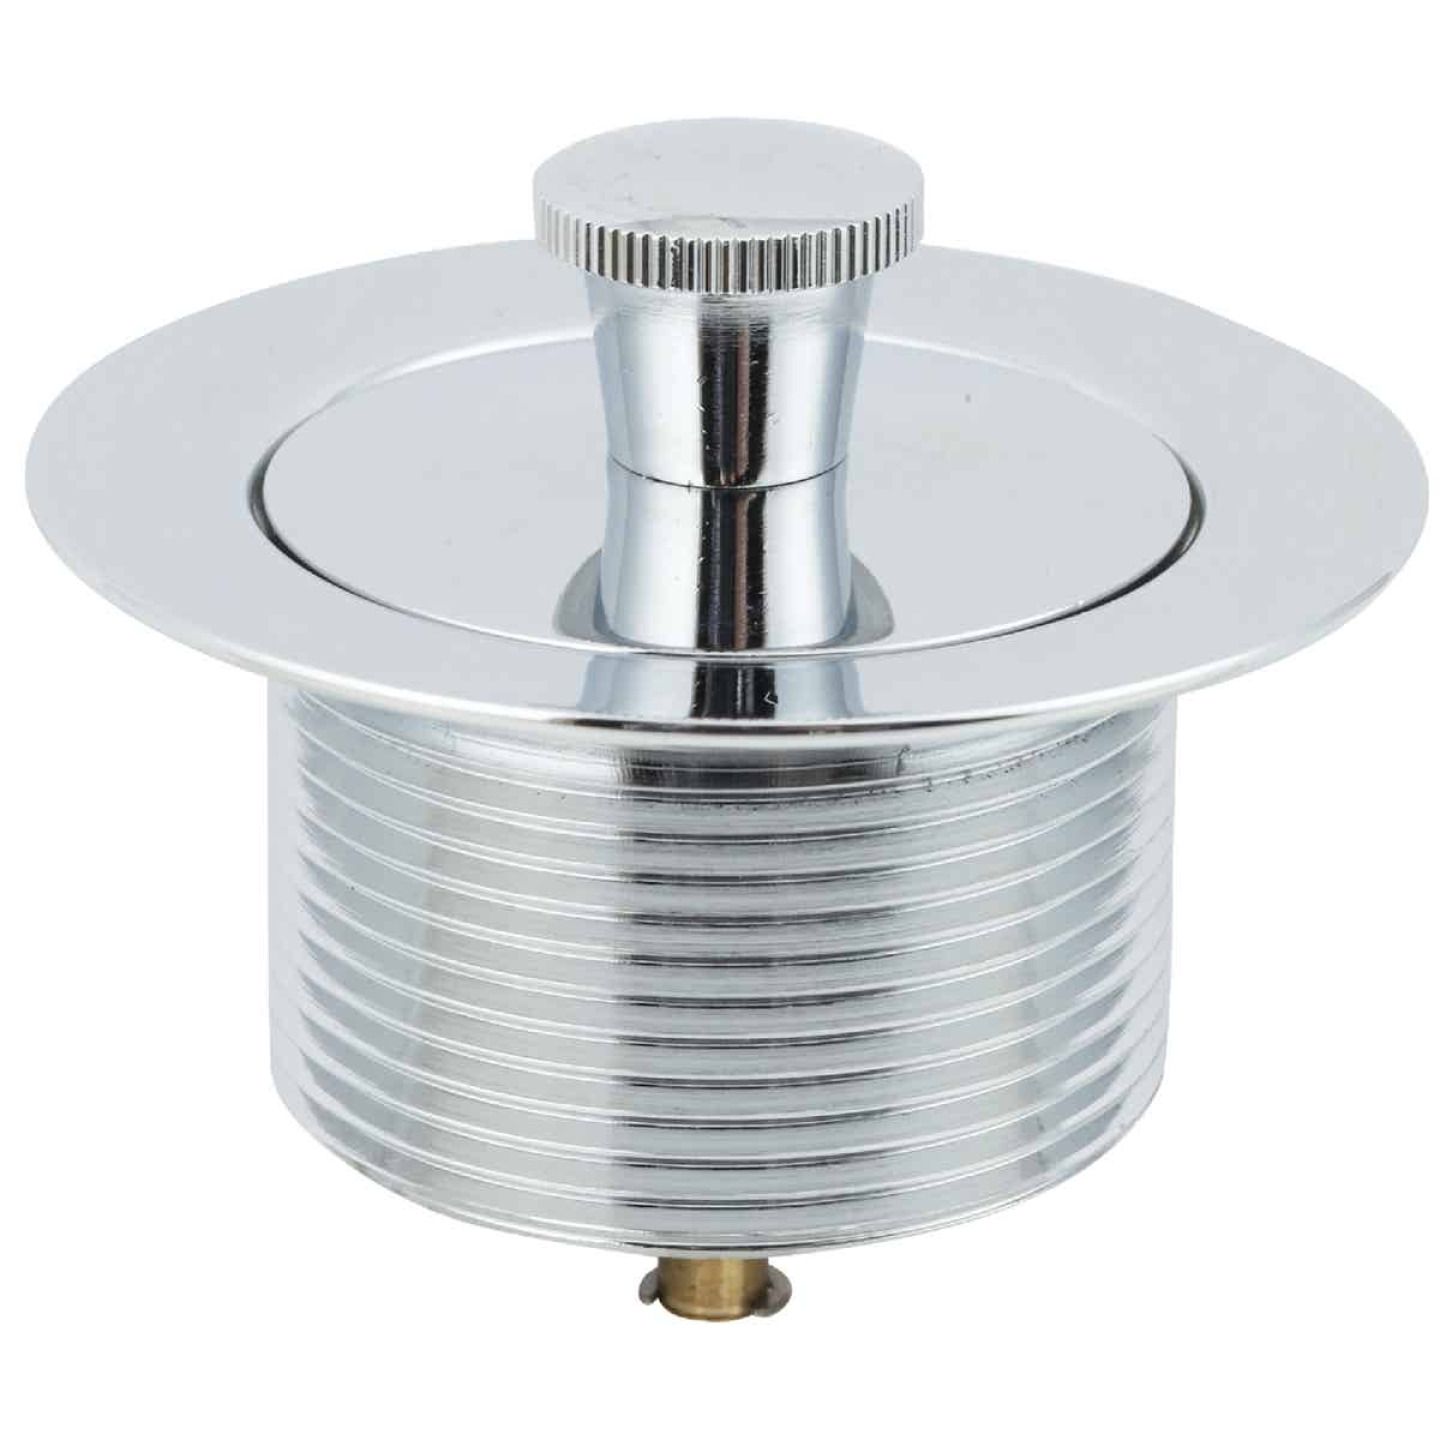 Do it 1-7/8 In. to 2-1/4 In. Lift and Lock Bathtub Drain Stopper with Chrome Finish Image 1